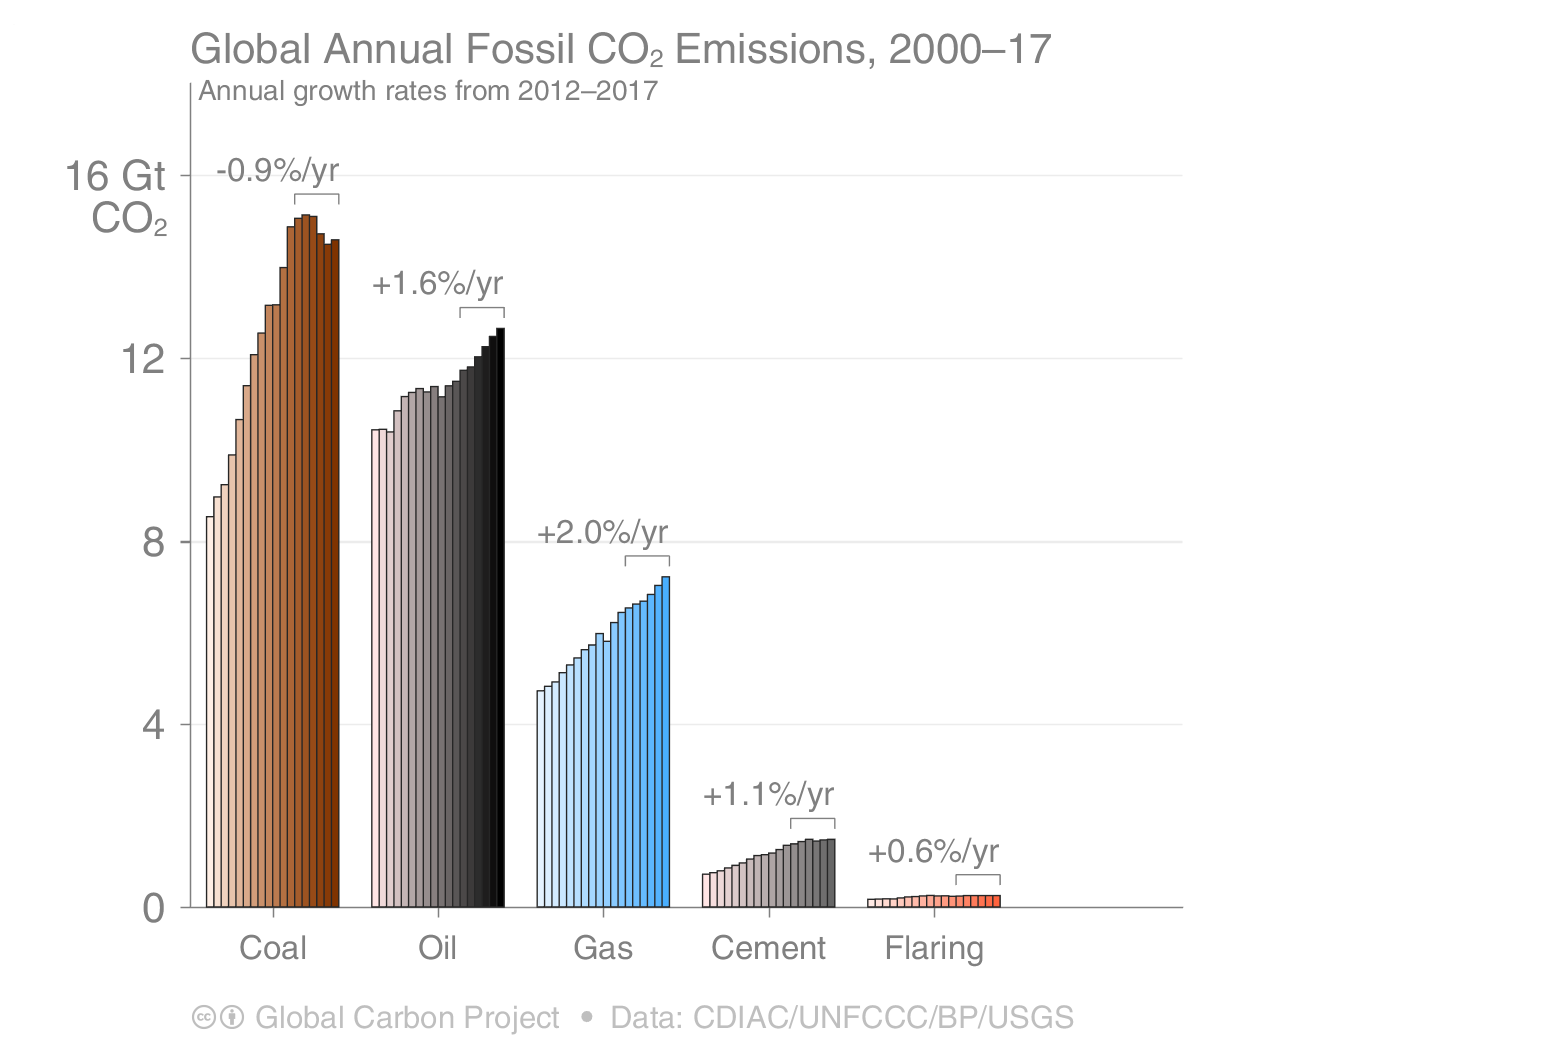 global annual fossil CO2 emissions 2000-2017 coal oil gas cement flaring